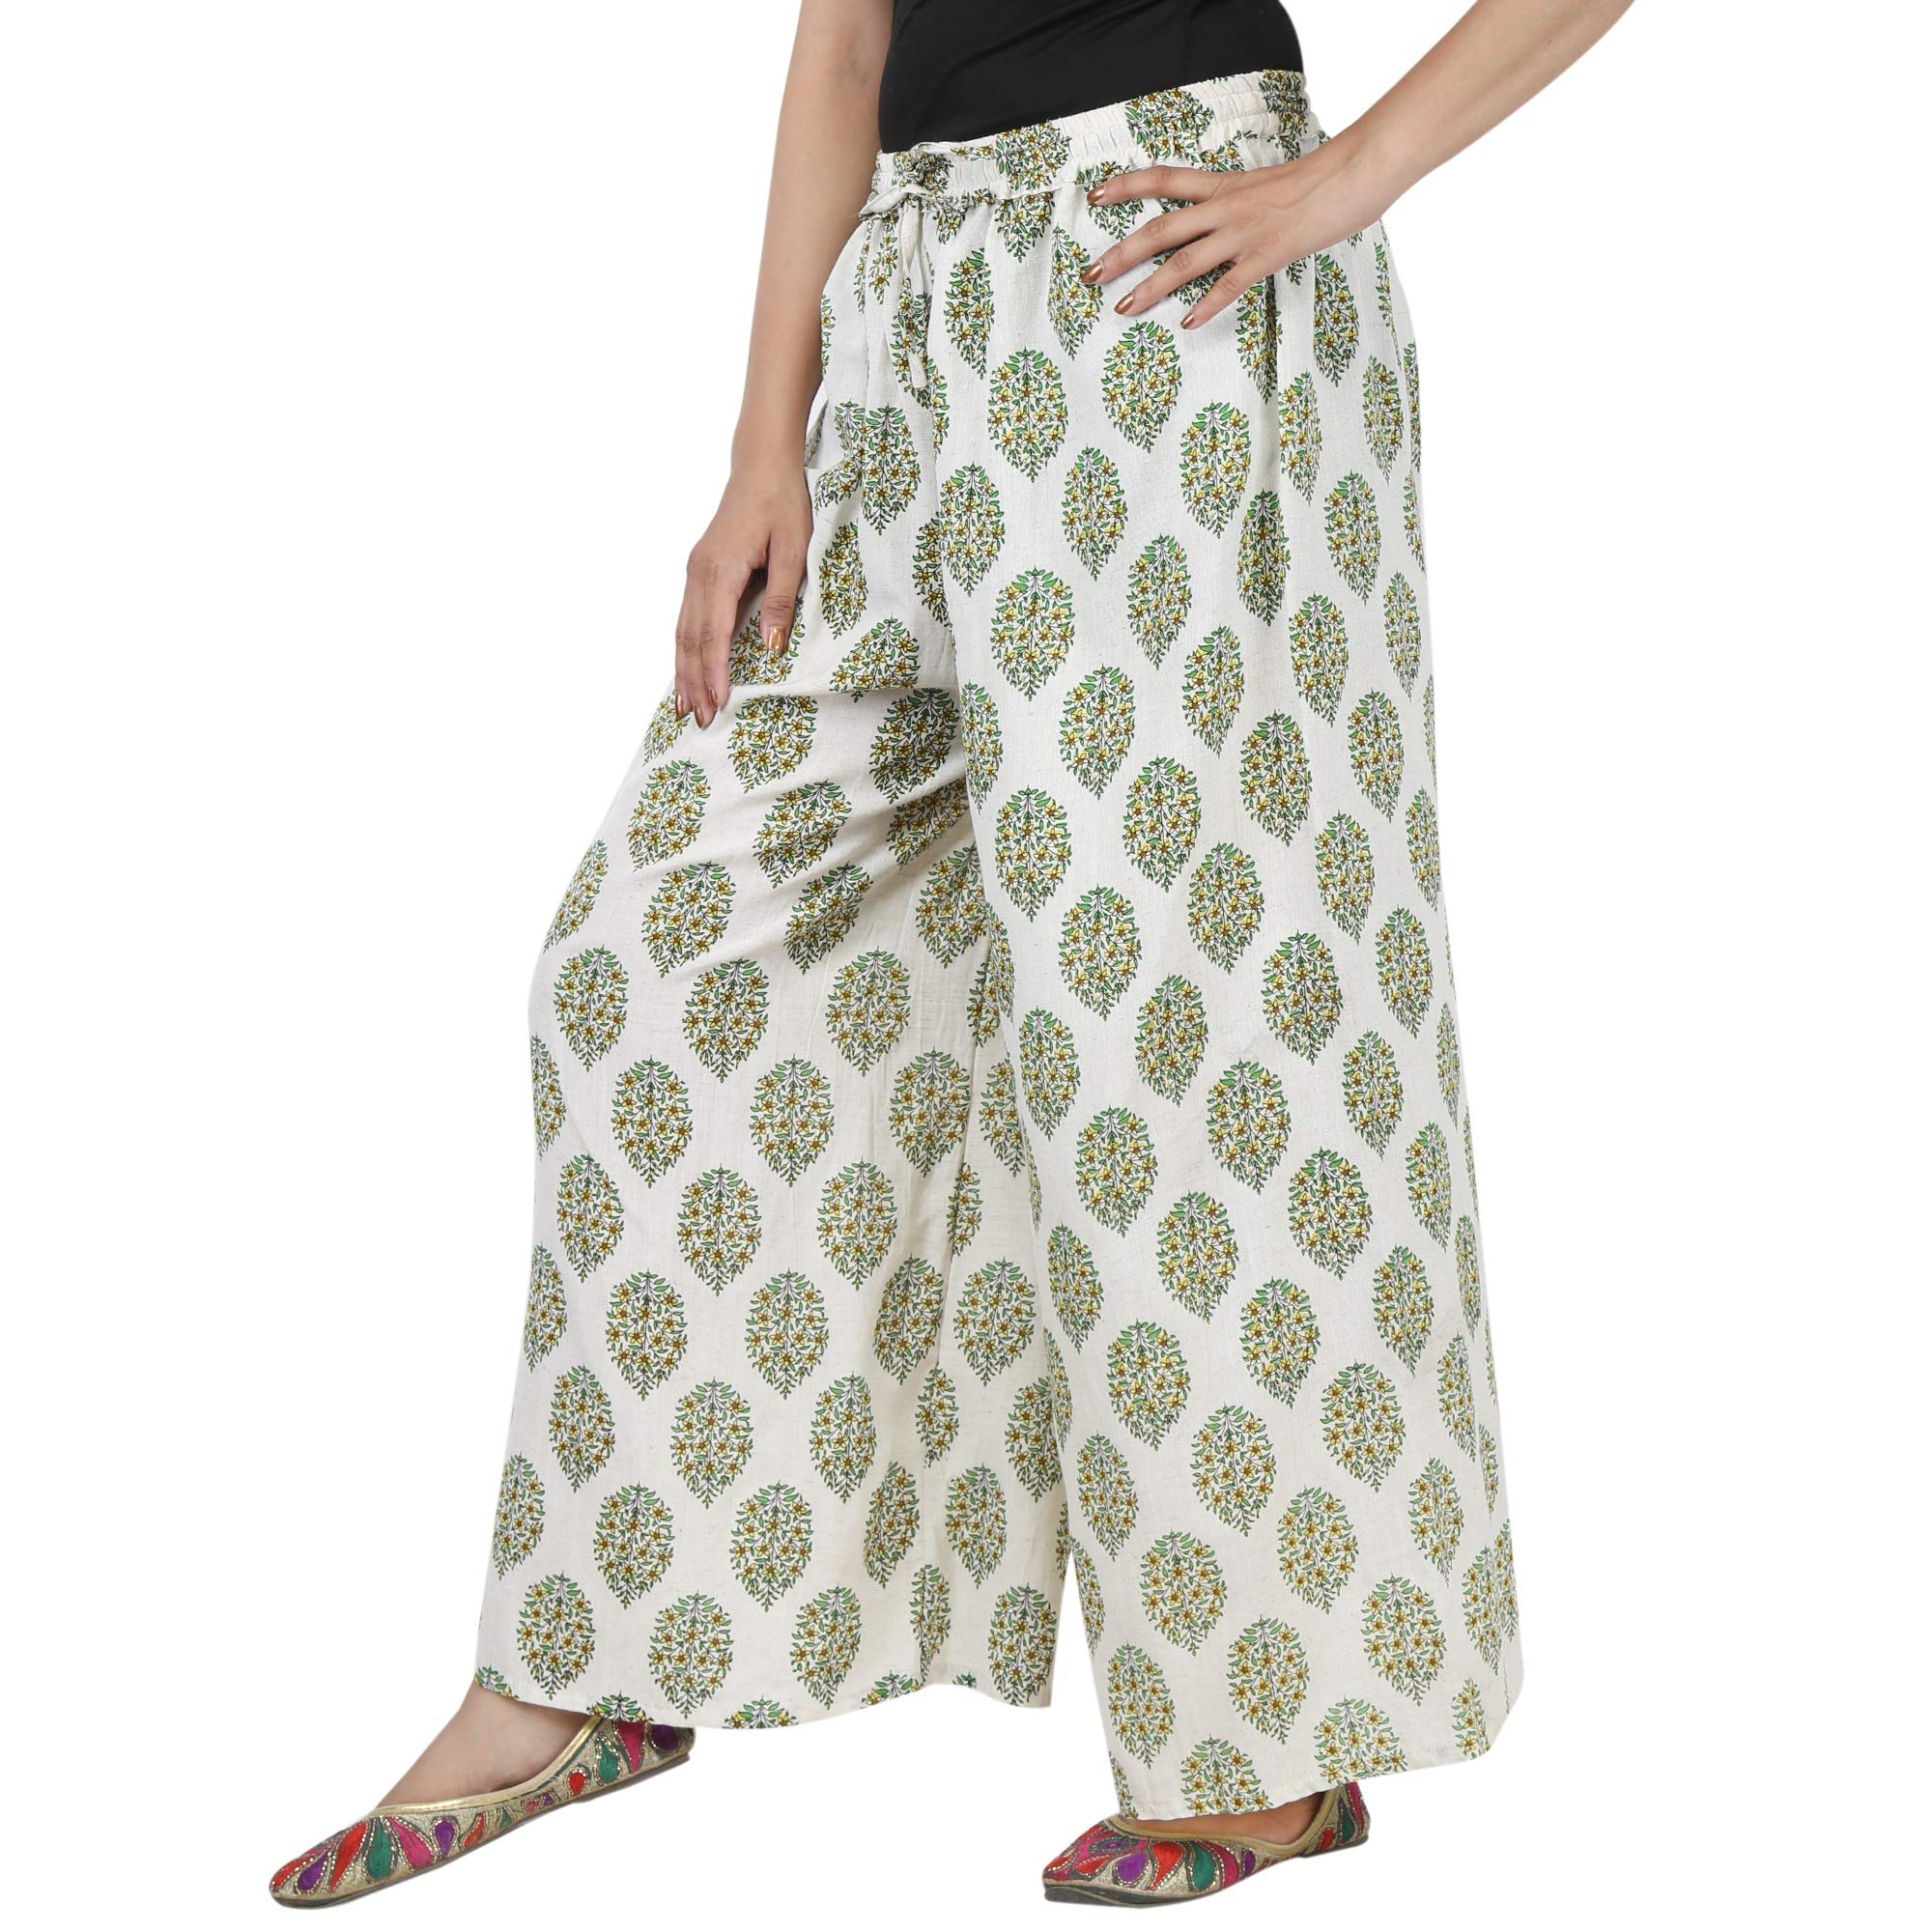 Jaipur Classic Cotton Printed Palazzo Pants Free Size for Women (White)